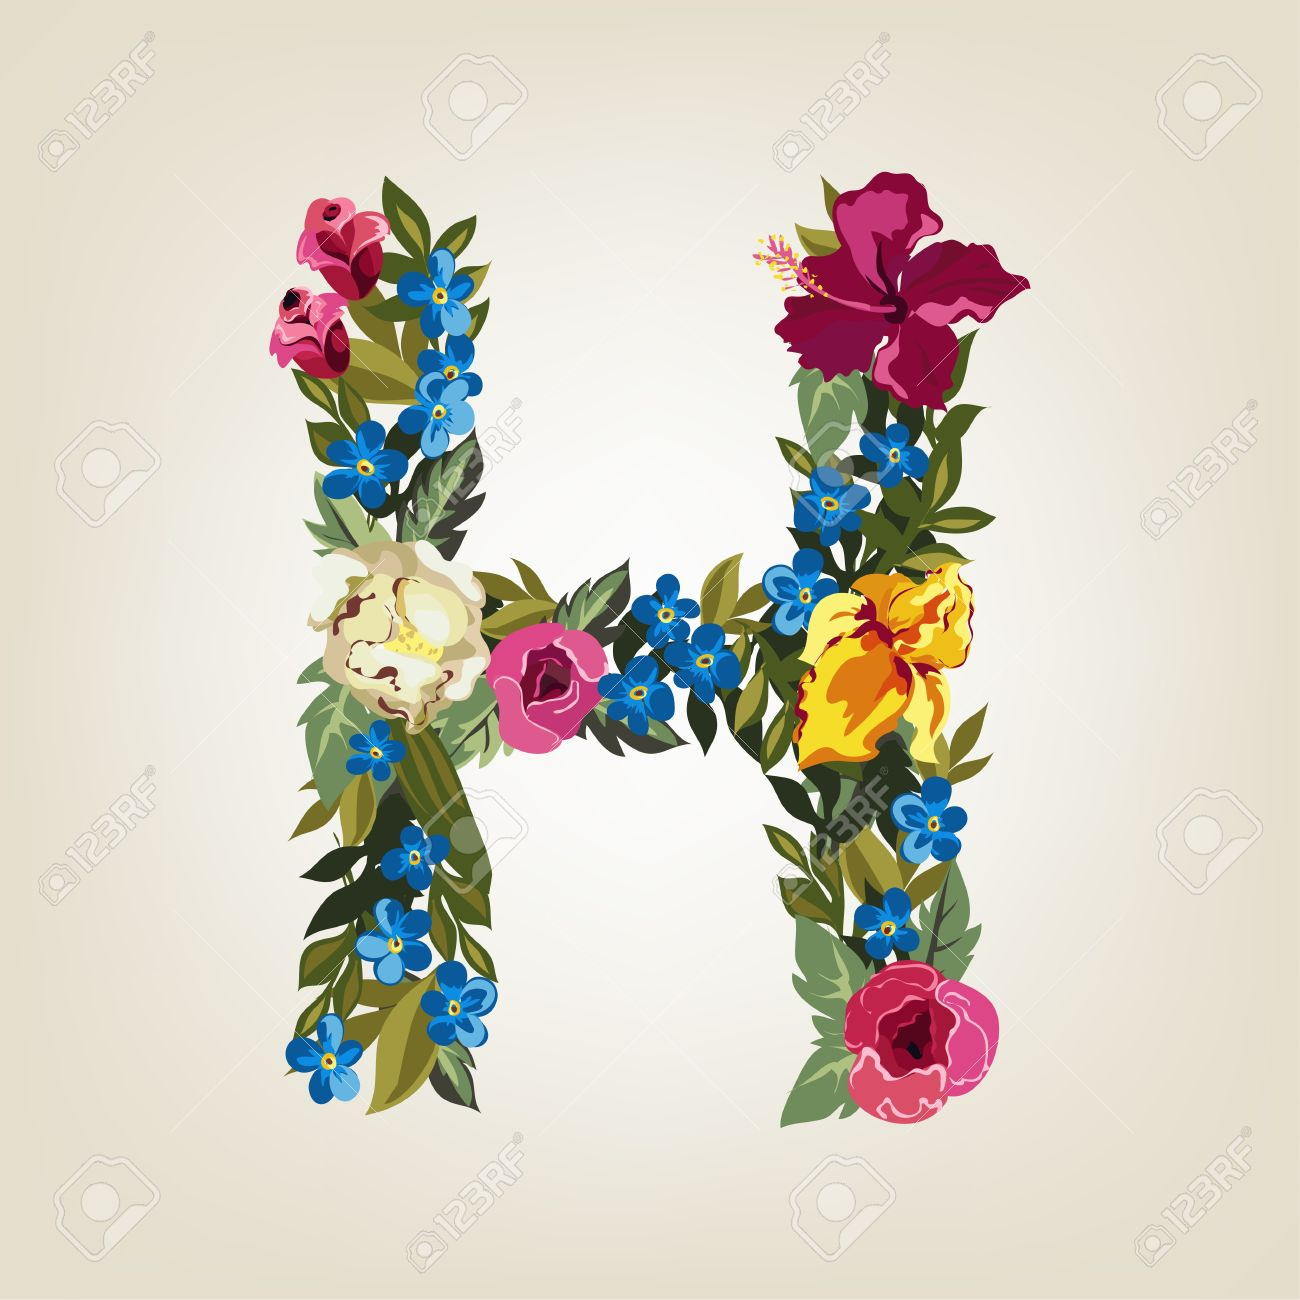 H Letter In Flower Capital Alphabet Royalty Free Cliparts Vectors